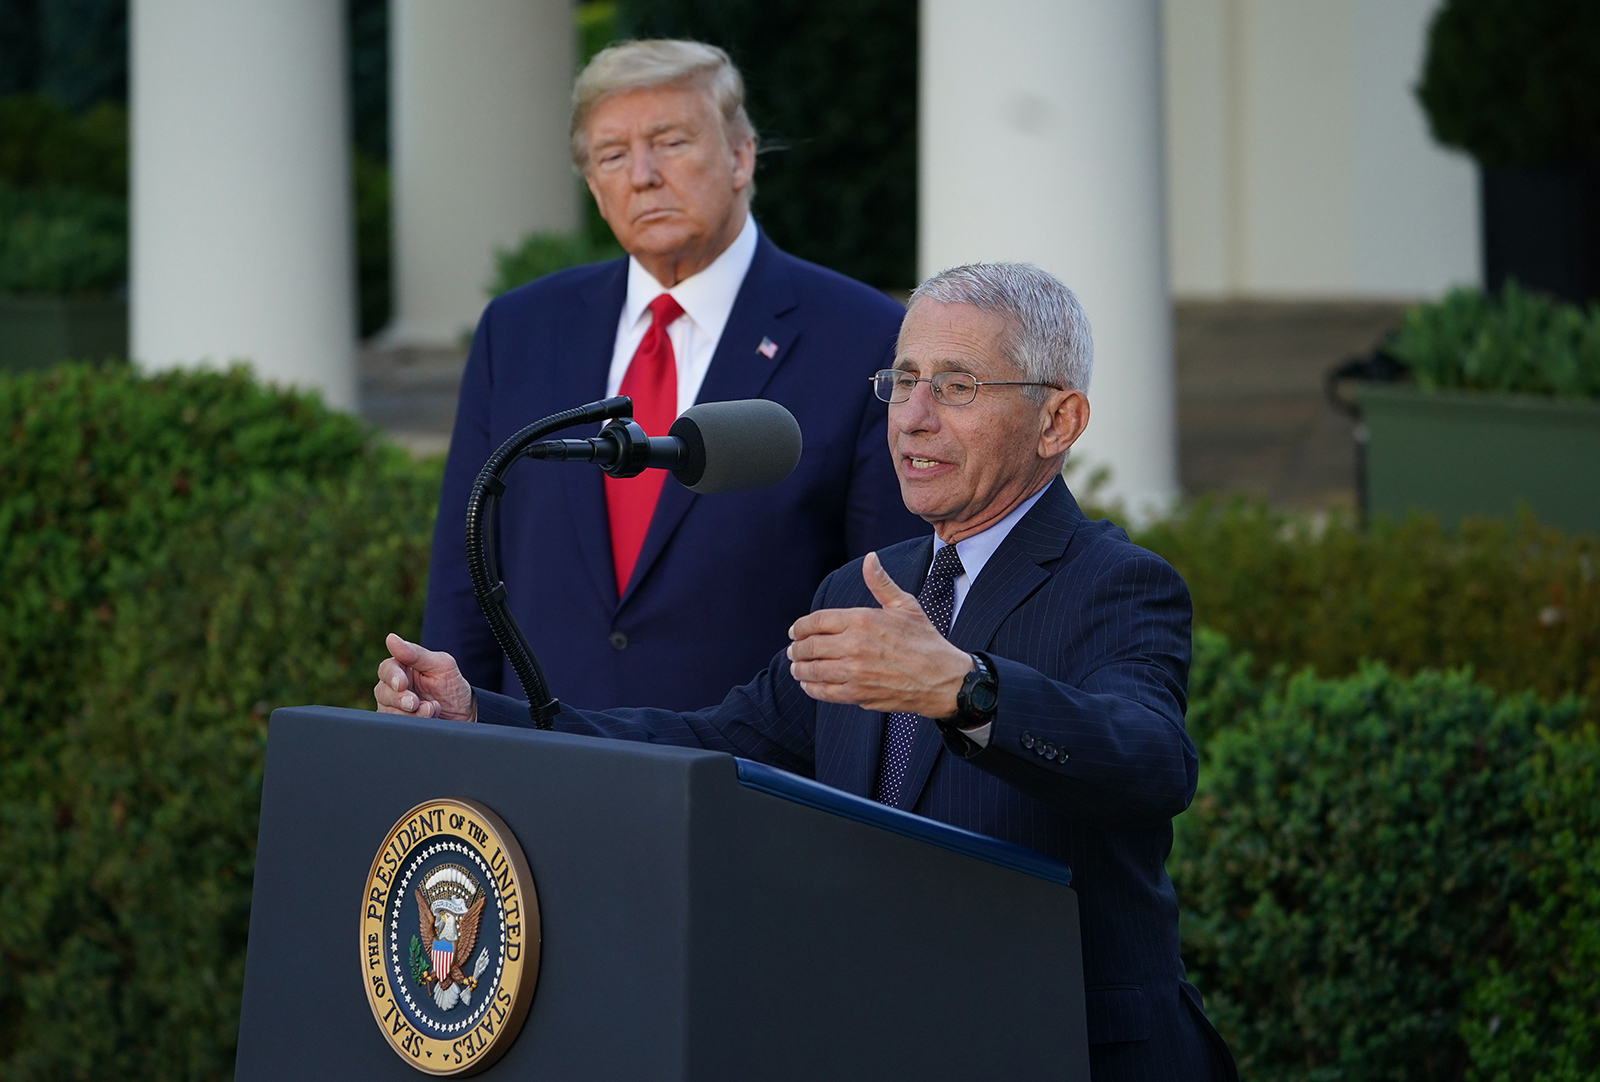 President Donald Trump listens as National Institute of Allergy and Infectious Diseases Director Dr. Anthony Fauci speaks during a Coronavirus Task Force press briefing in the Rose Garden of the White House in Washington, DC, on March 30.